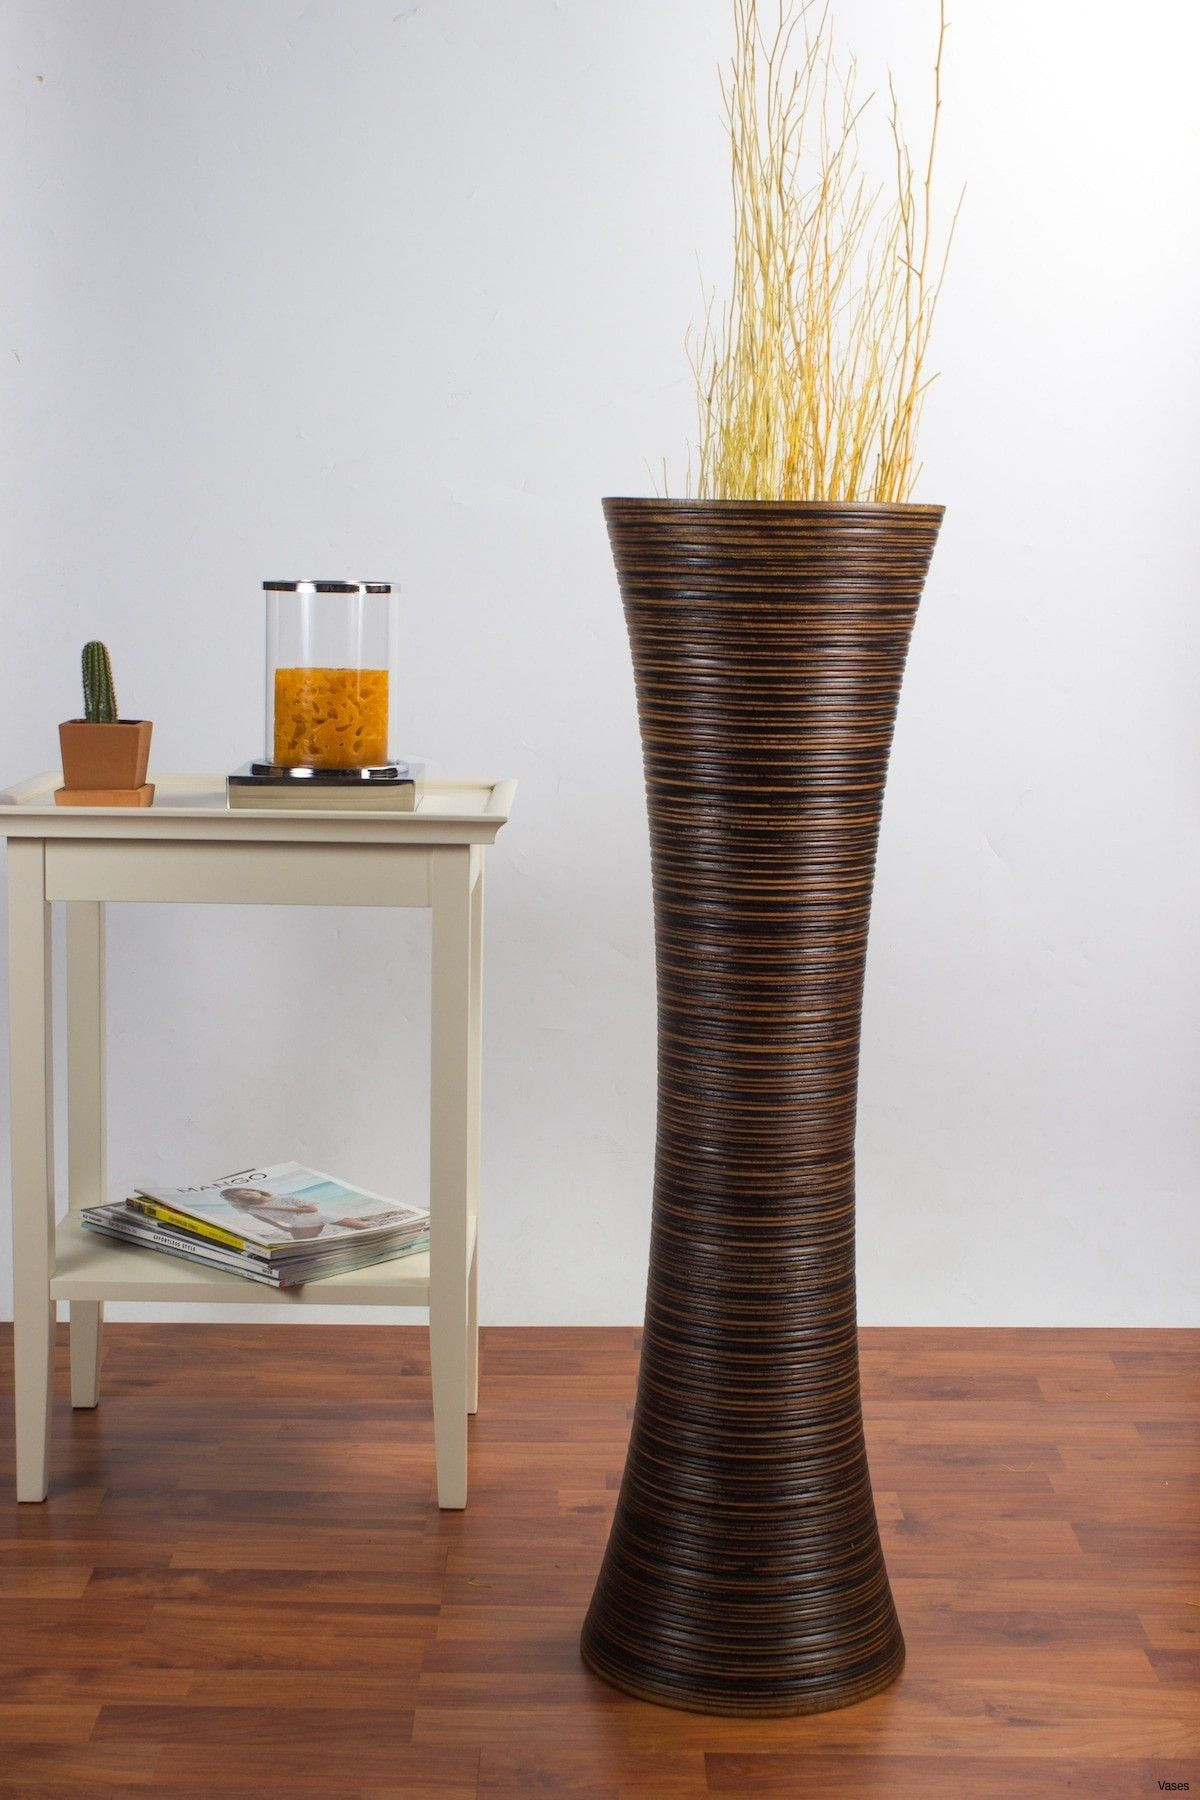 Big Clear Vase Of 30 Large Floor Vase the Weekly World for Decorative Floor Vases Fresh D Dkbrw 5749 1h Vases Tall Brown I 0d